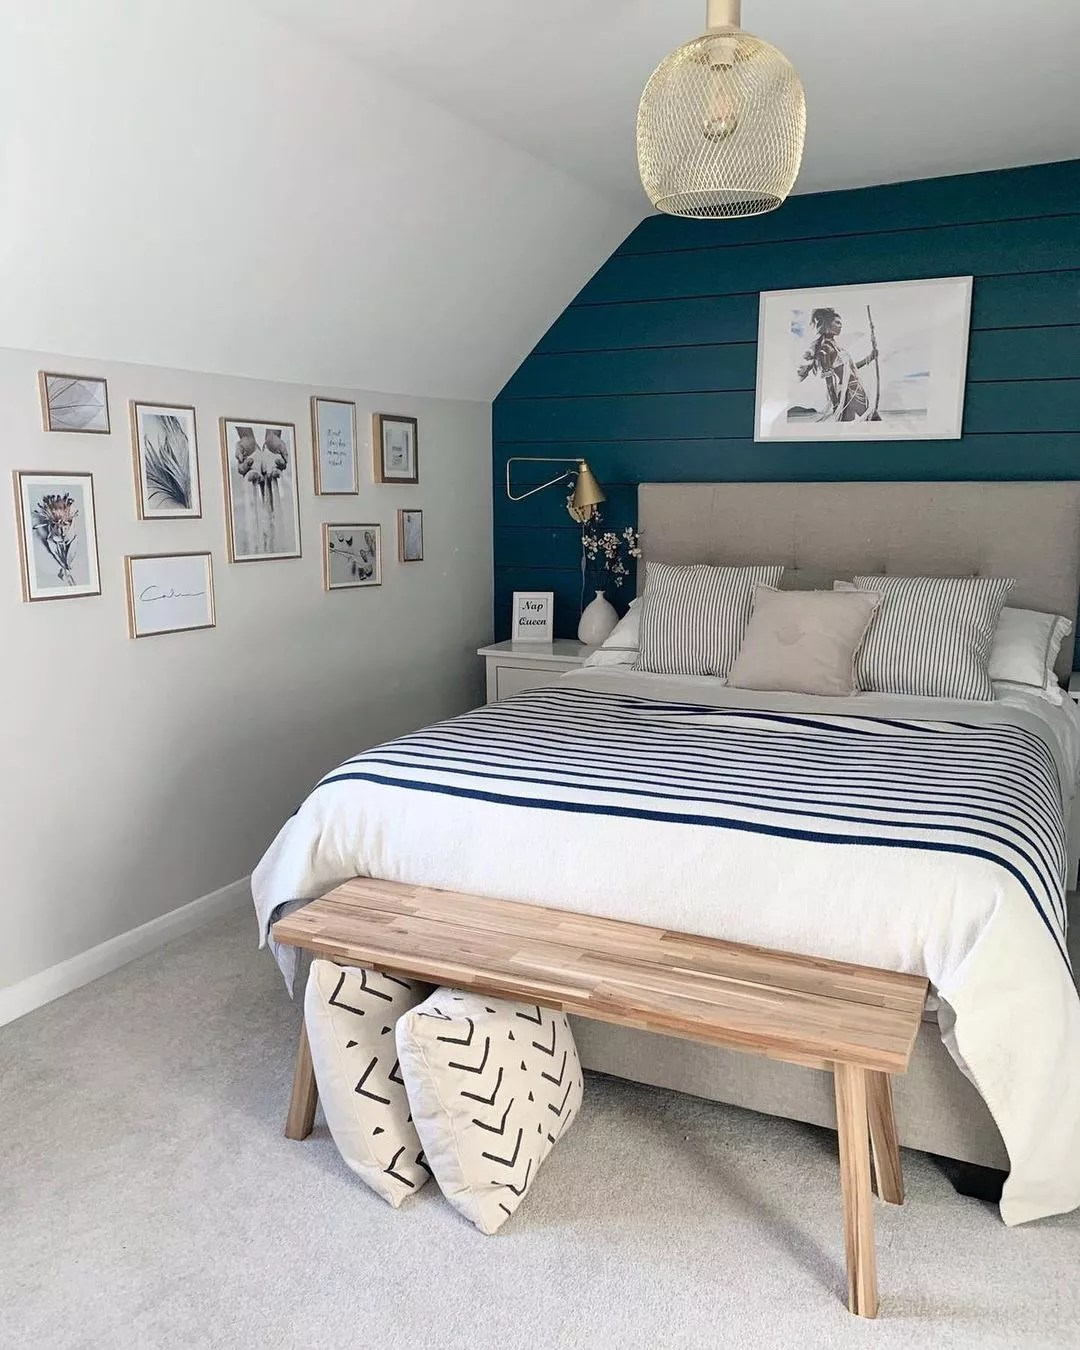 White bedroom with dramatic dark teal accent wall. Photo by Instagram user @_homebirds_.